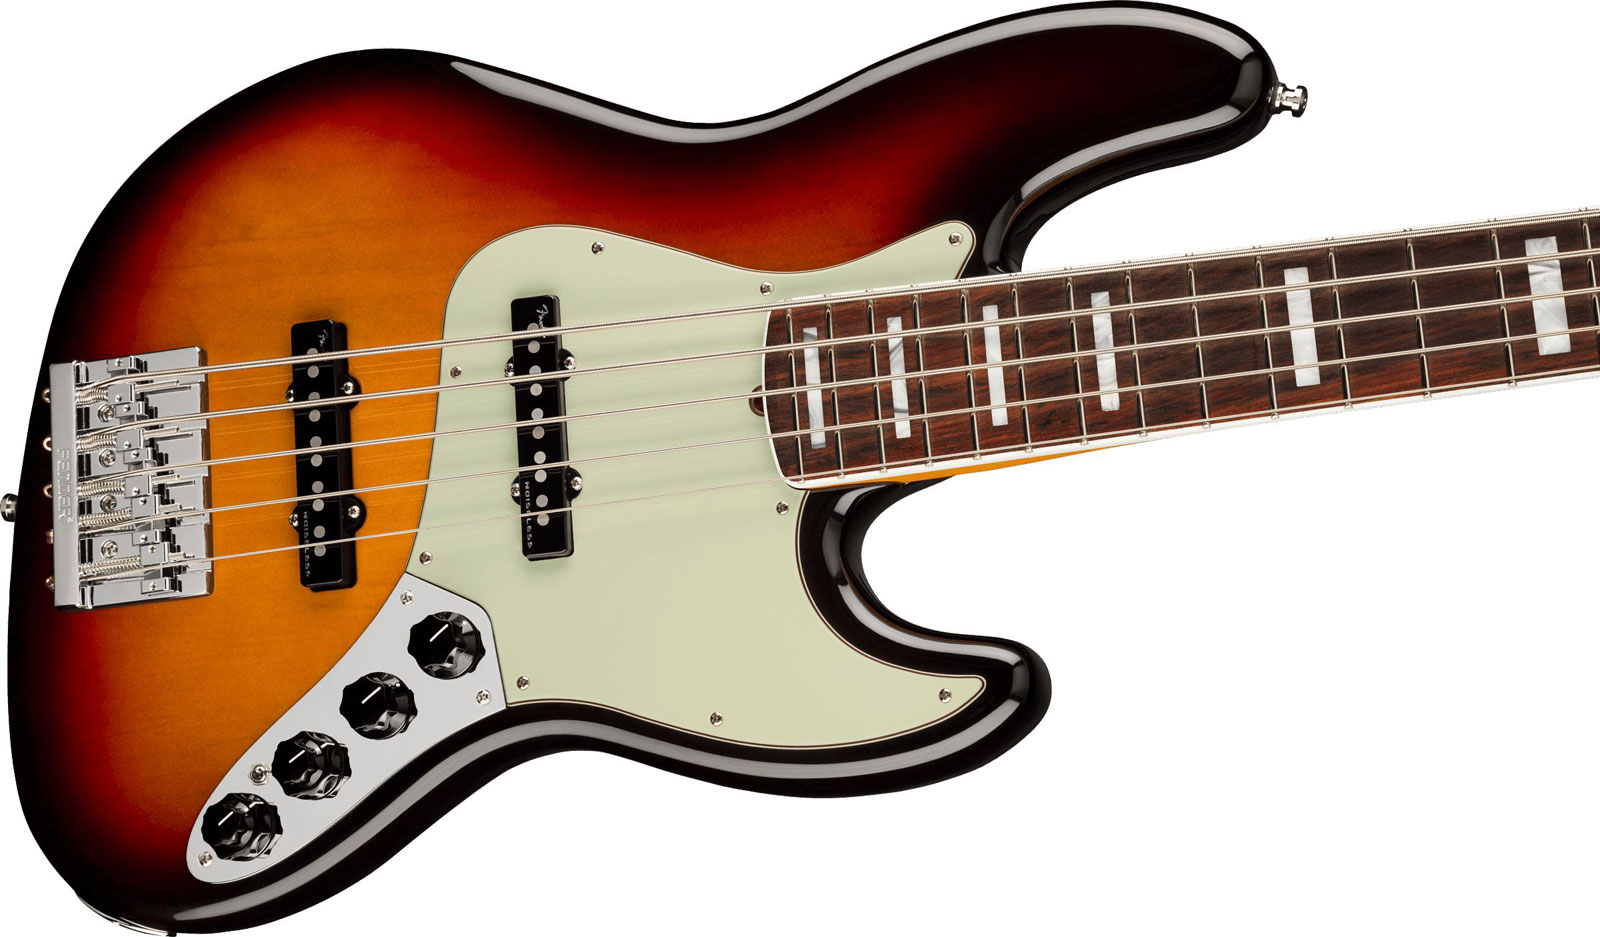 AMERICAN ULTRA JAZZ BASS V RW ULTRABURST